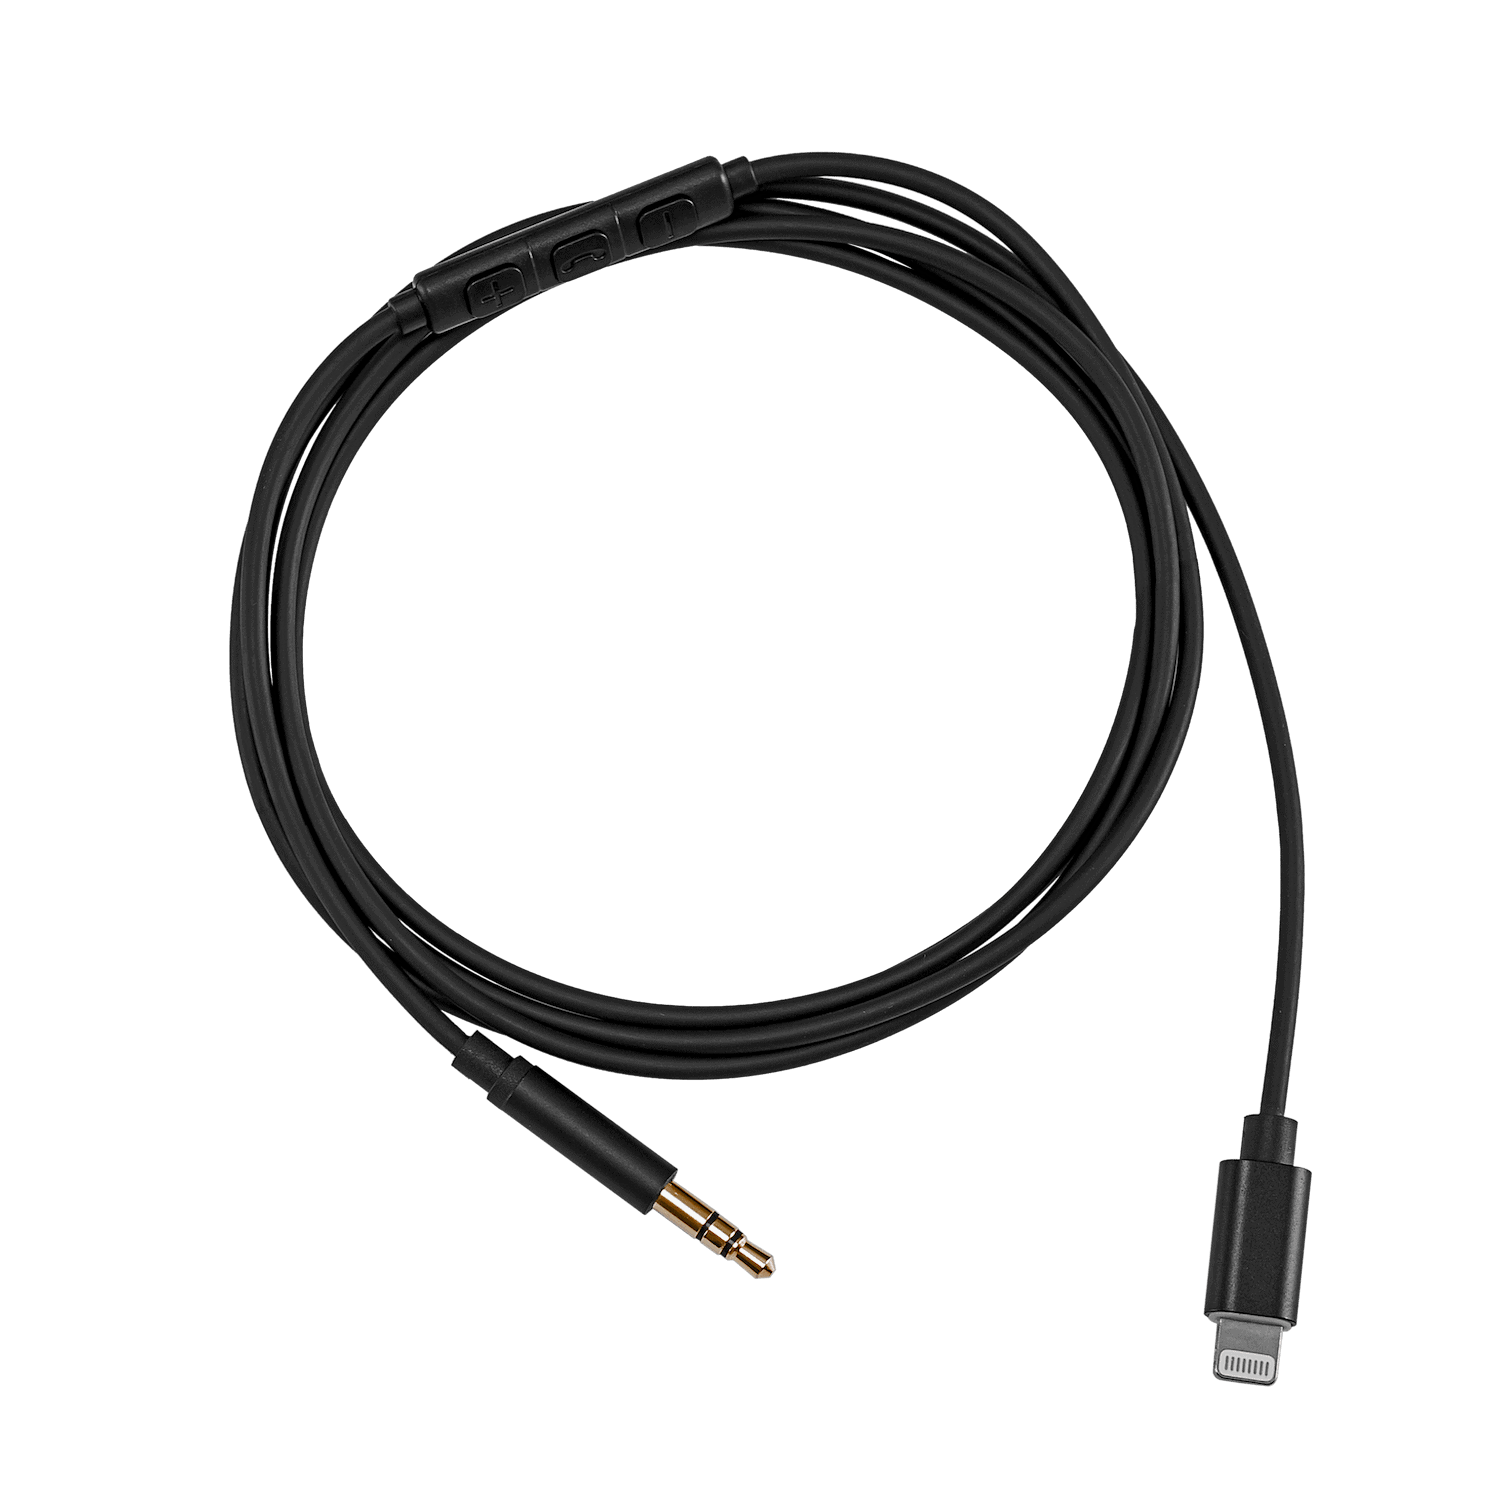 MIIEGO audio cable with Lightning